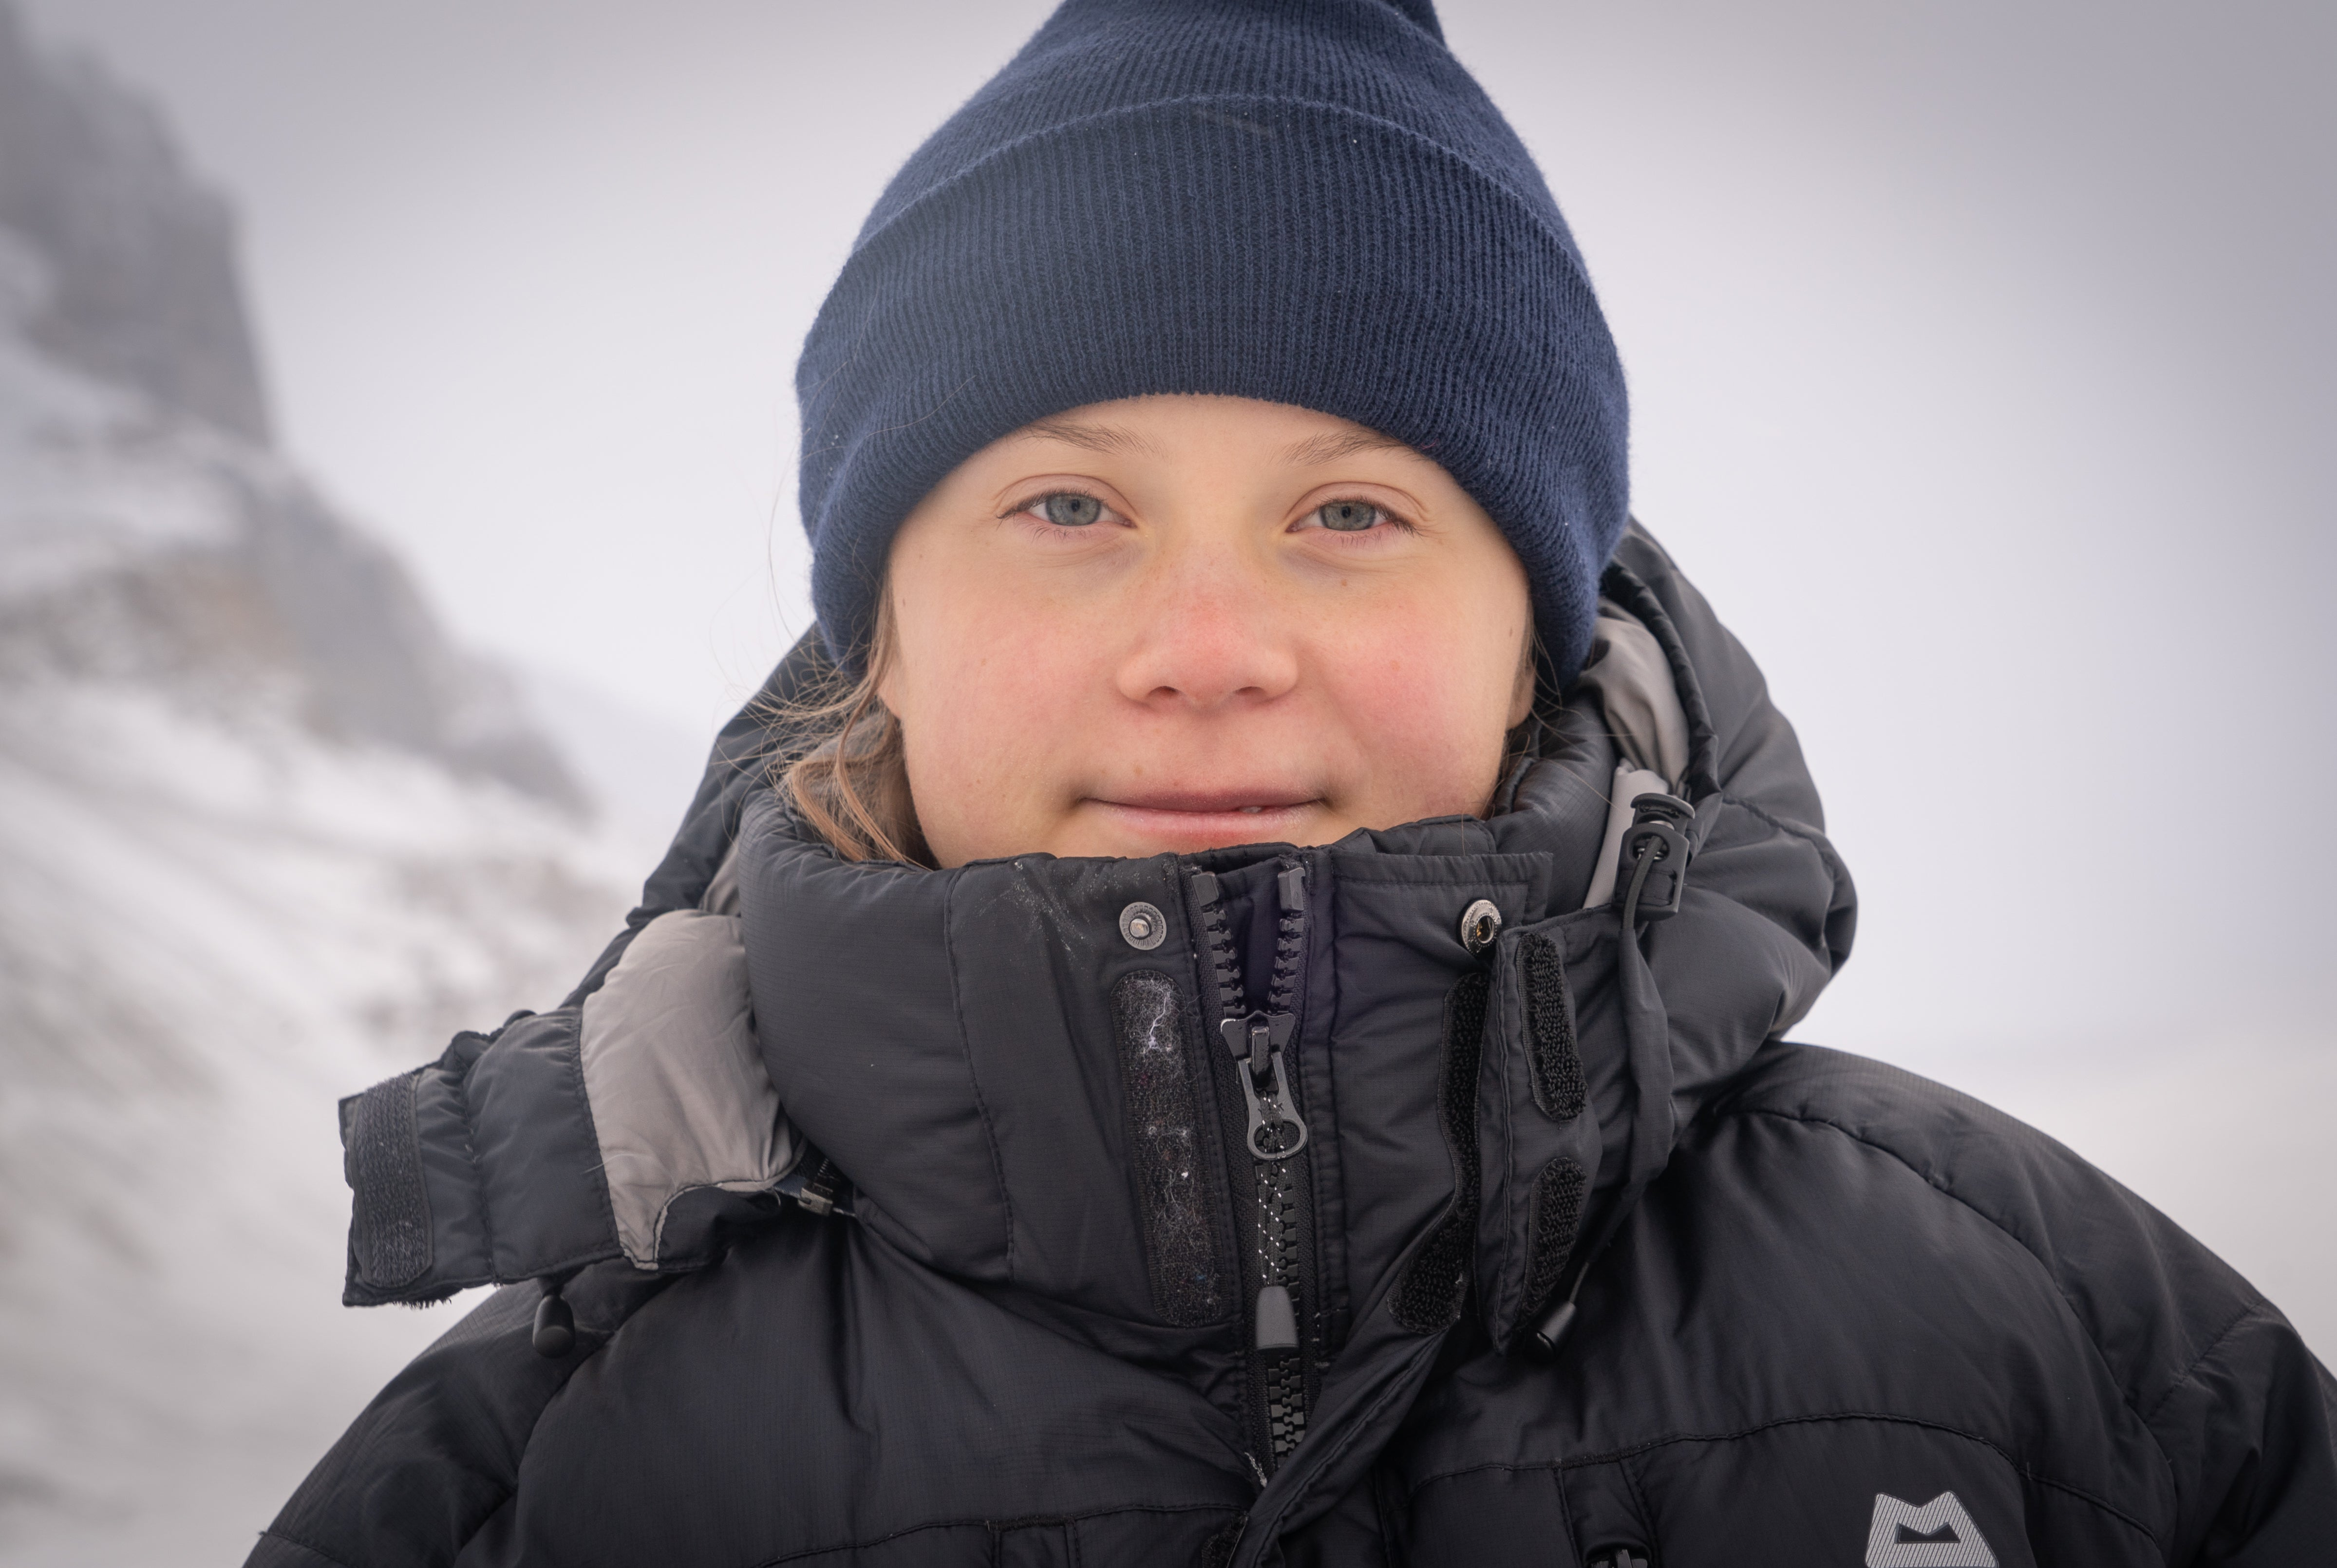 Greta Thunberg on a glacier from - A year so change the world